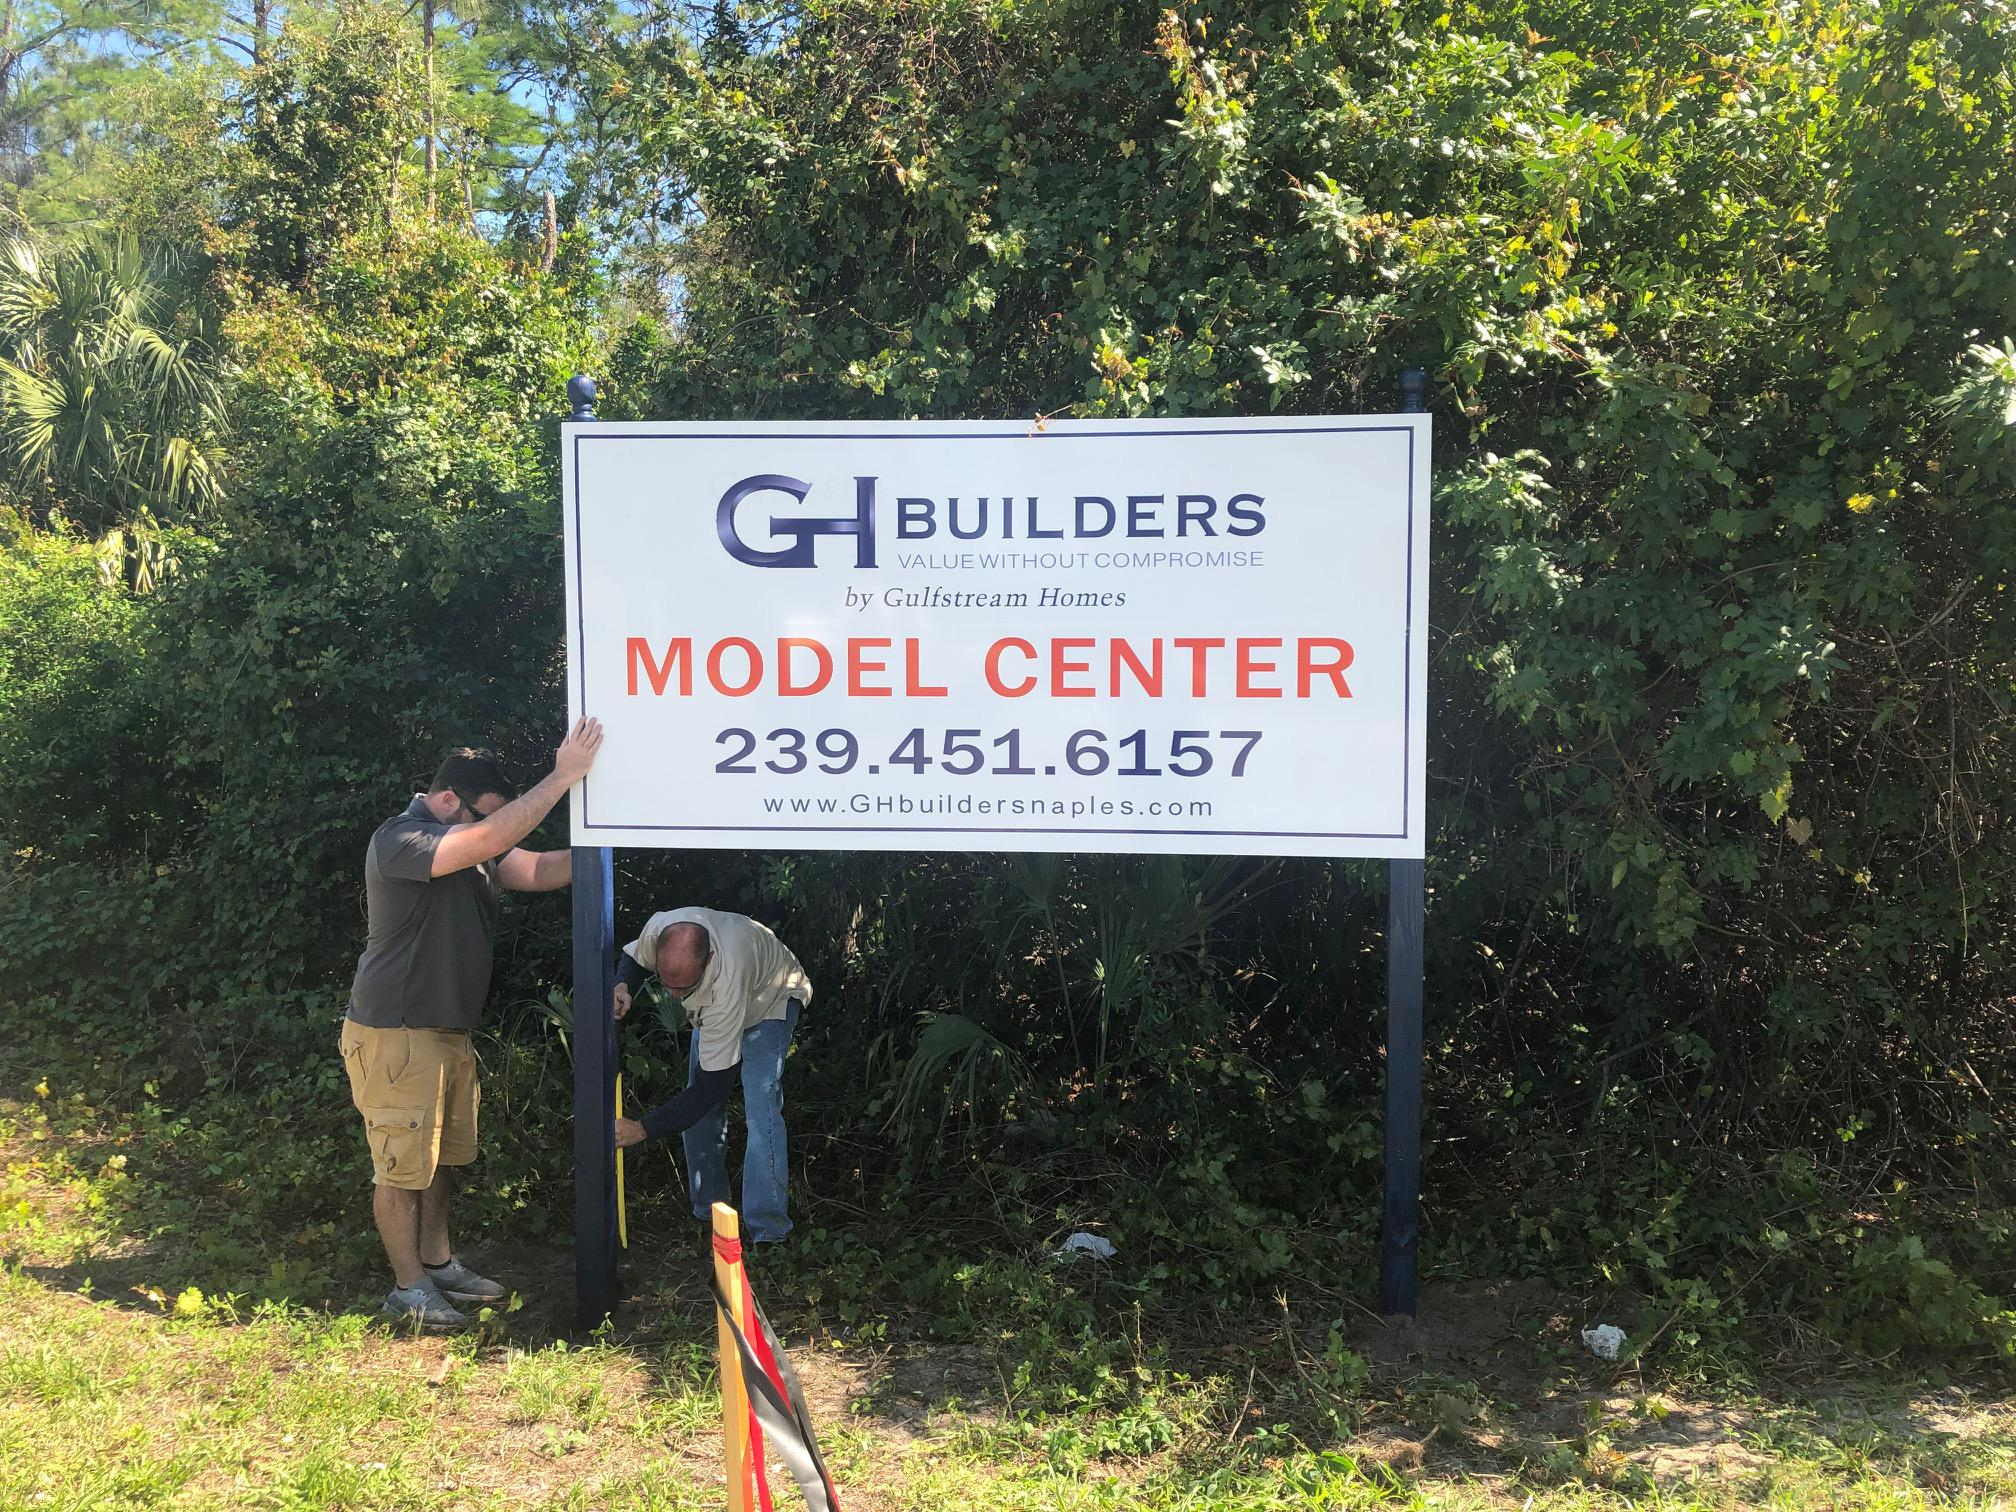 GH Builders Nearing Construction on Four New Homes in Golden Gate Estates